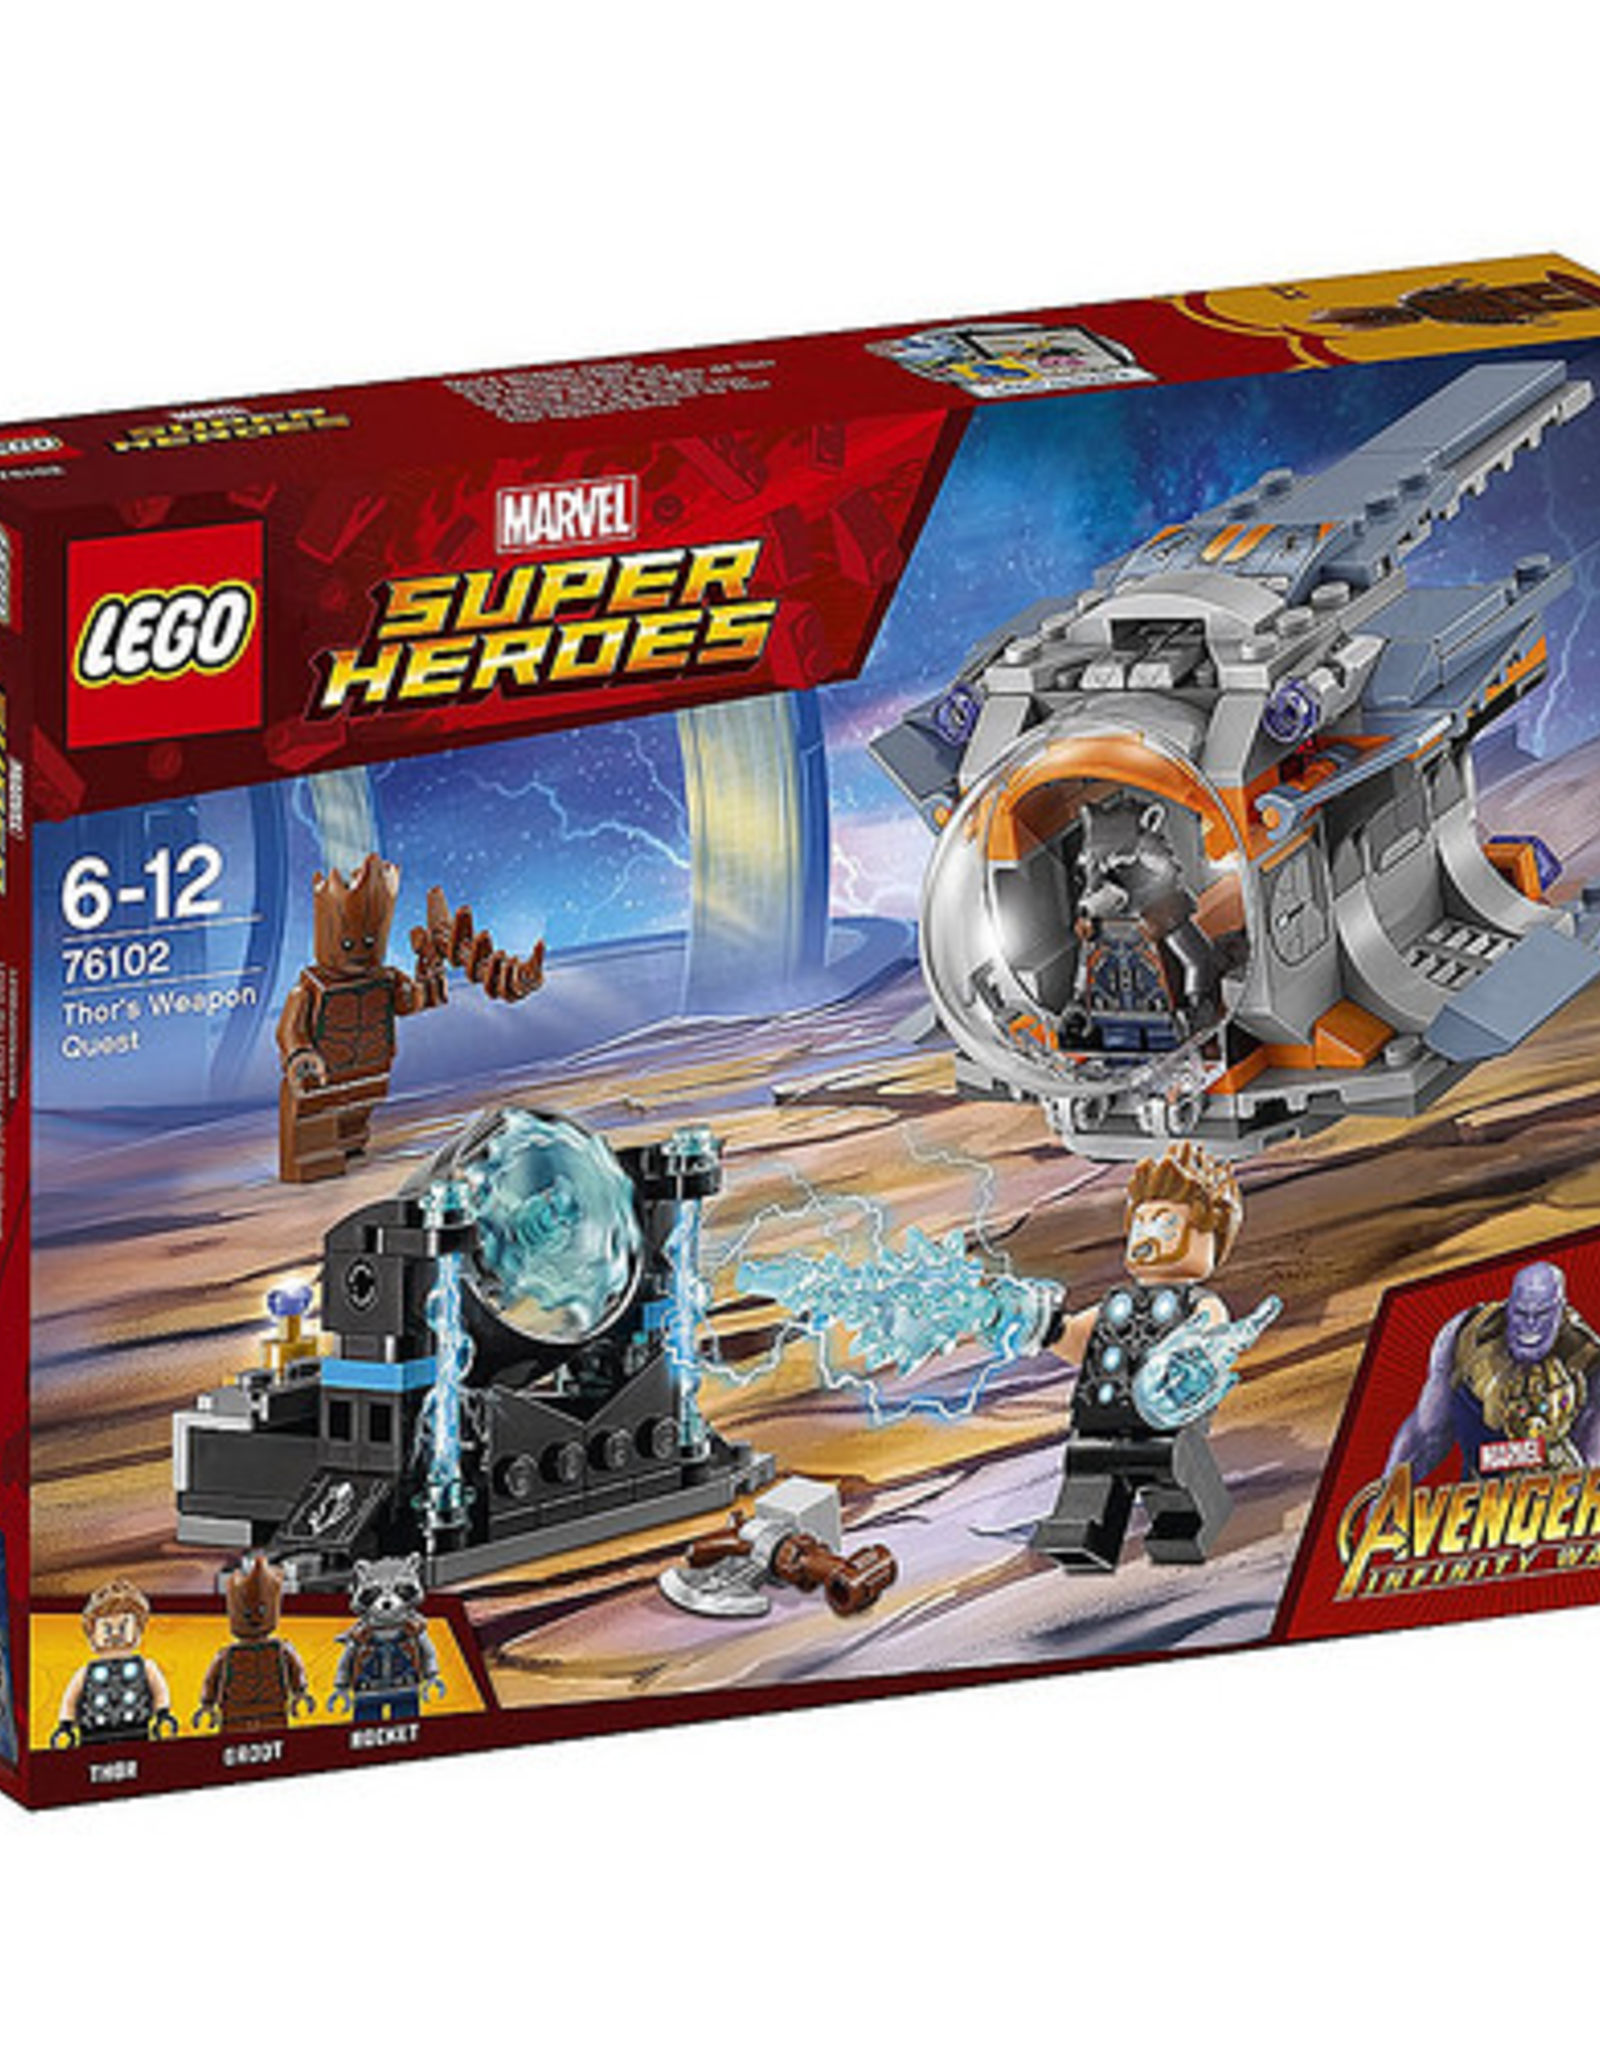 LEGO LEGO 76102 Thor's Weapon Quest SUPER HEROES